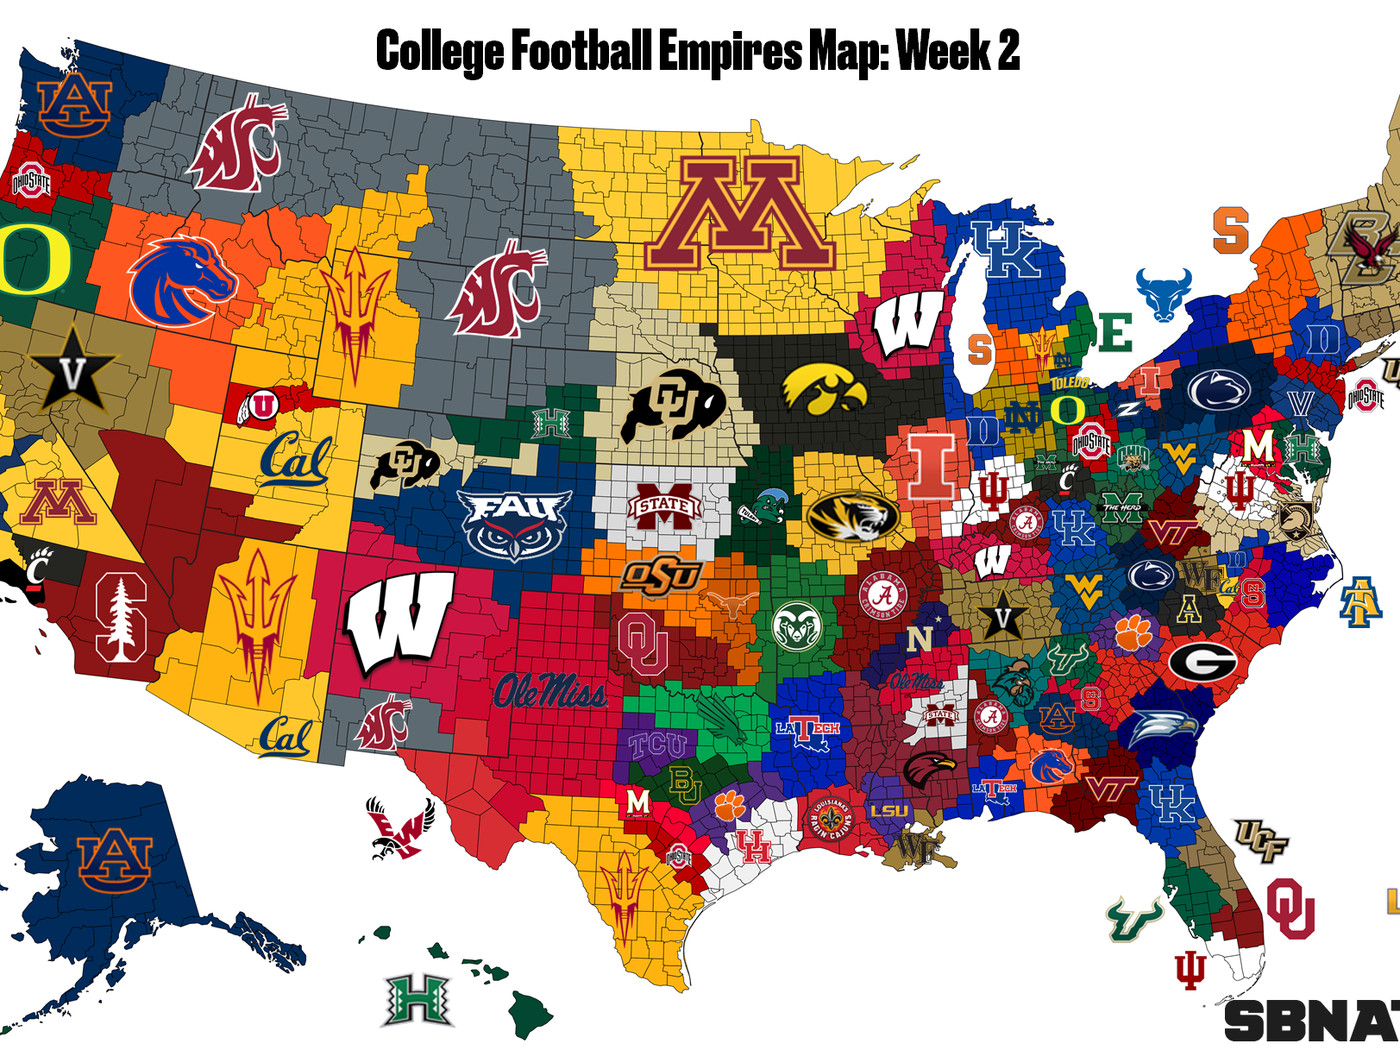 Map Of Colleges College Football Empires Map 2018, updated after Week 2   SBNation.com